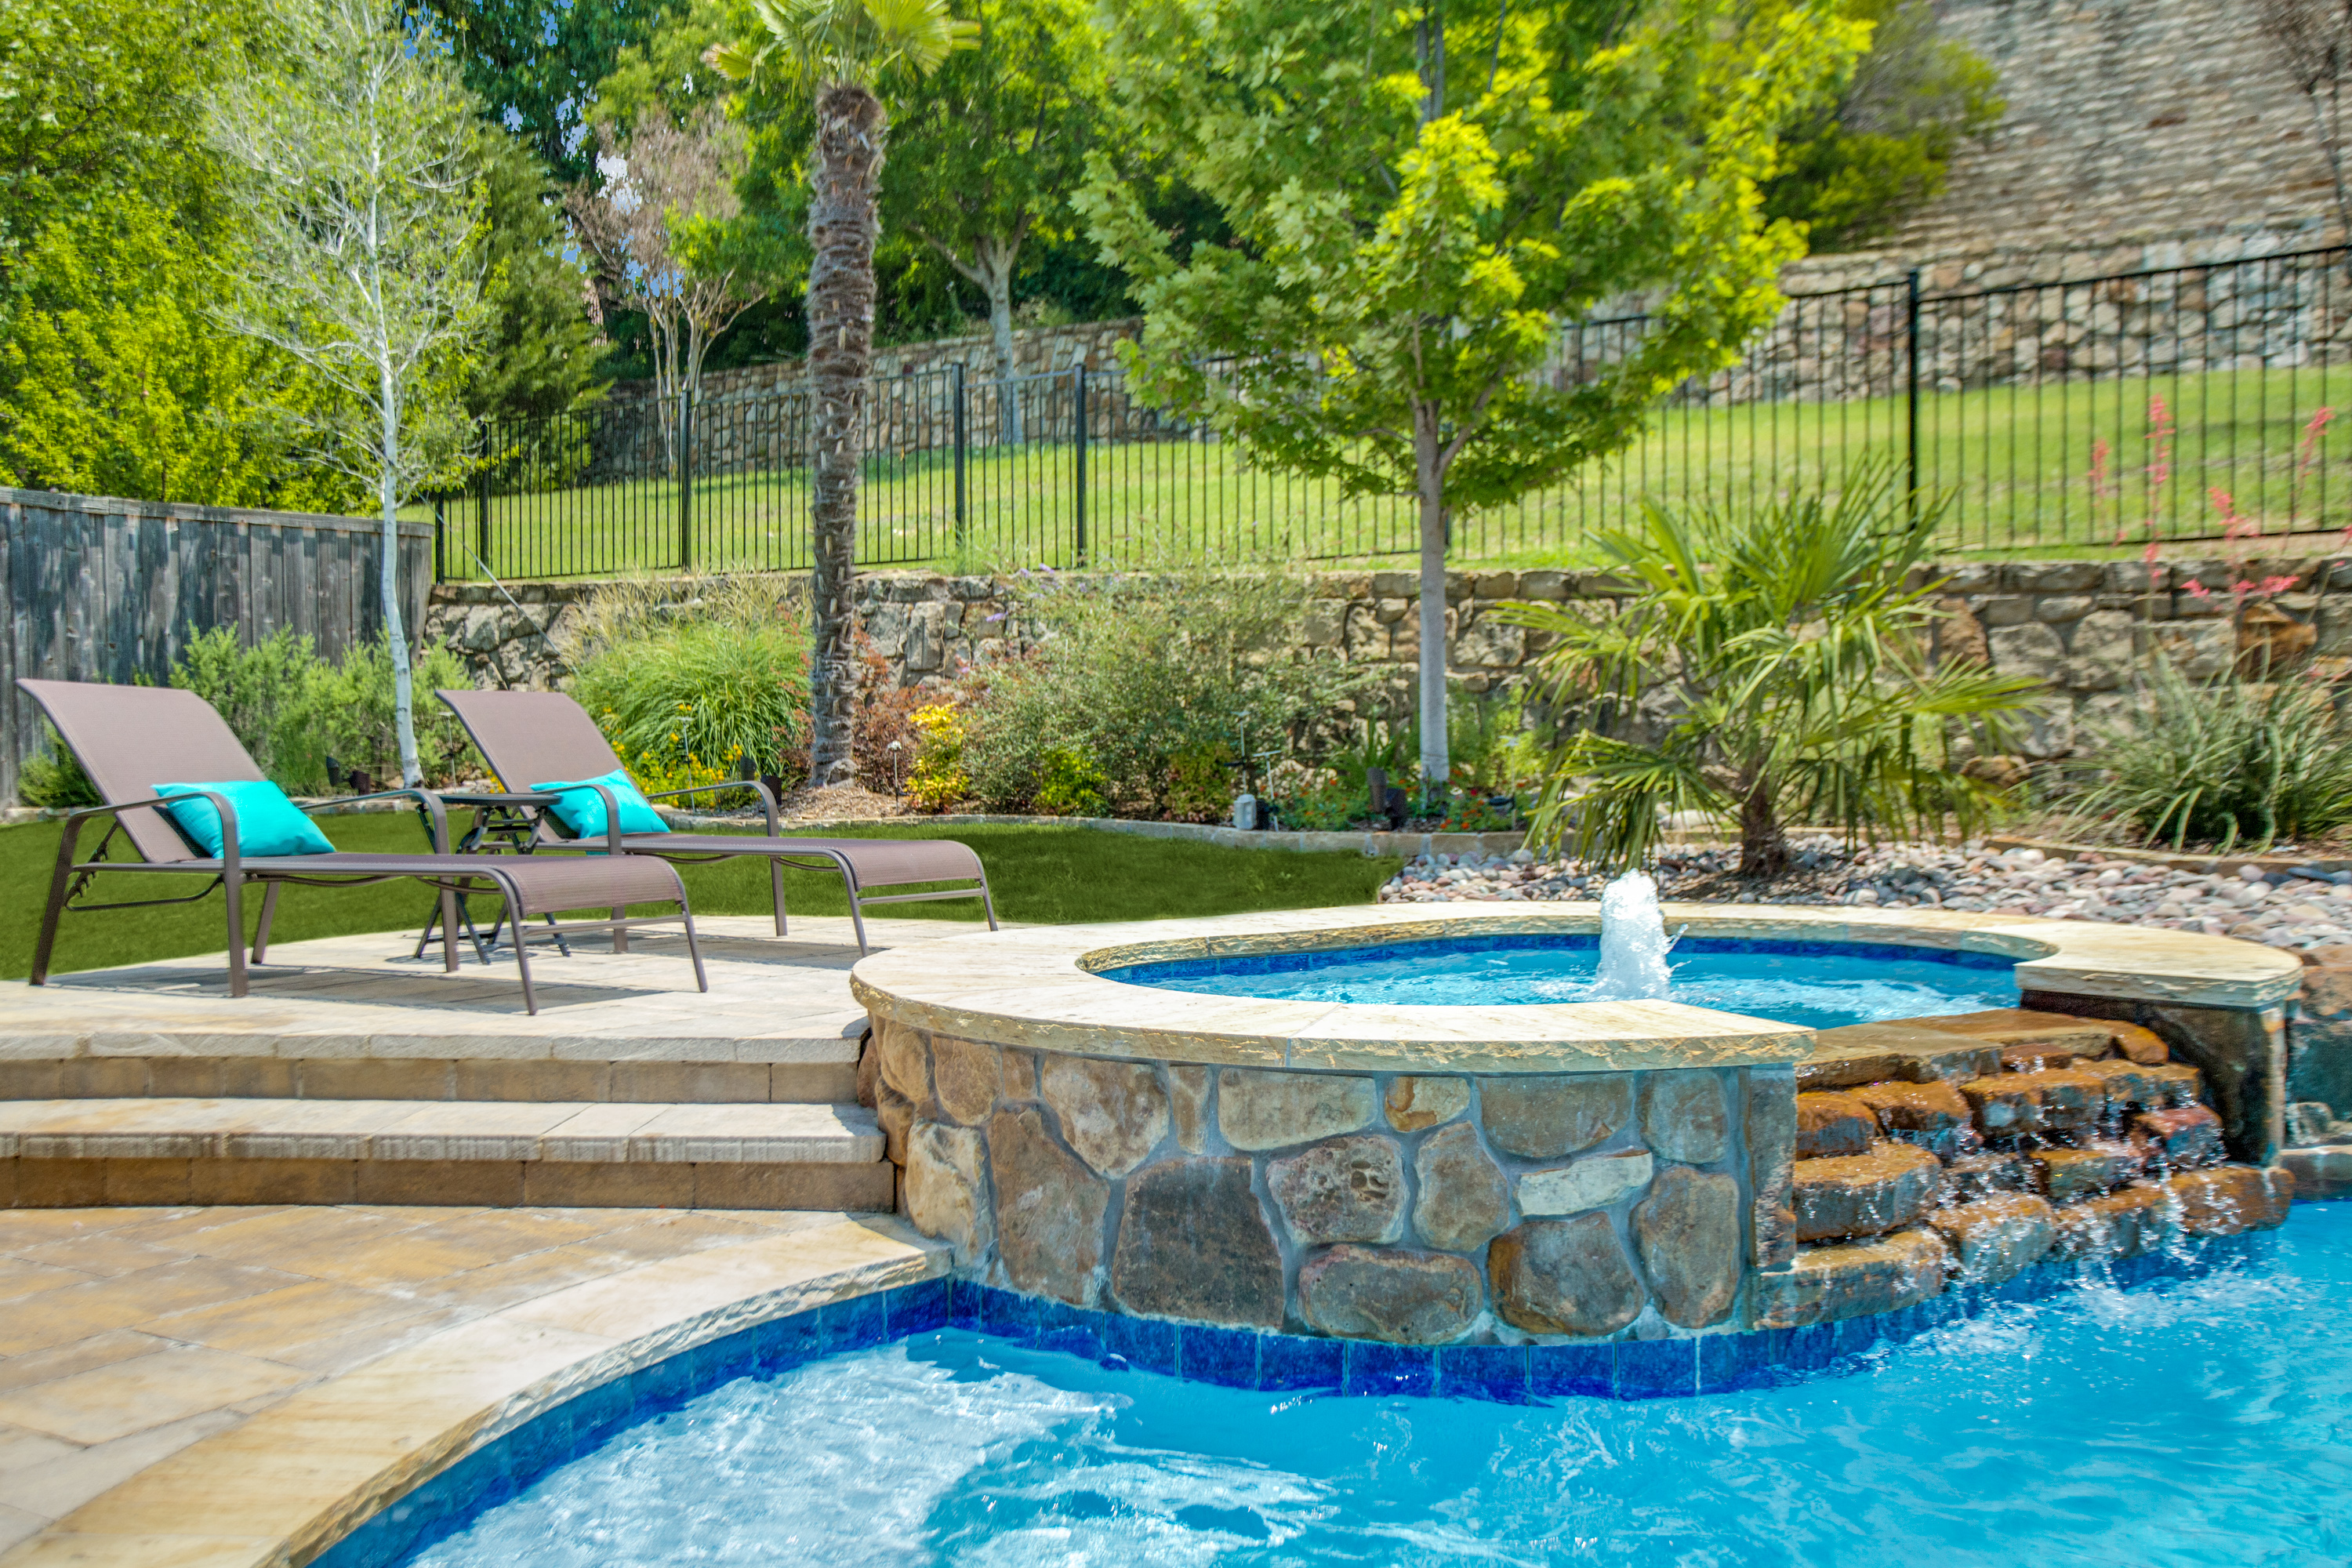 Gold_Medal_Pools-Residential_Pool_Free_Form_Style-Plano-TX-7